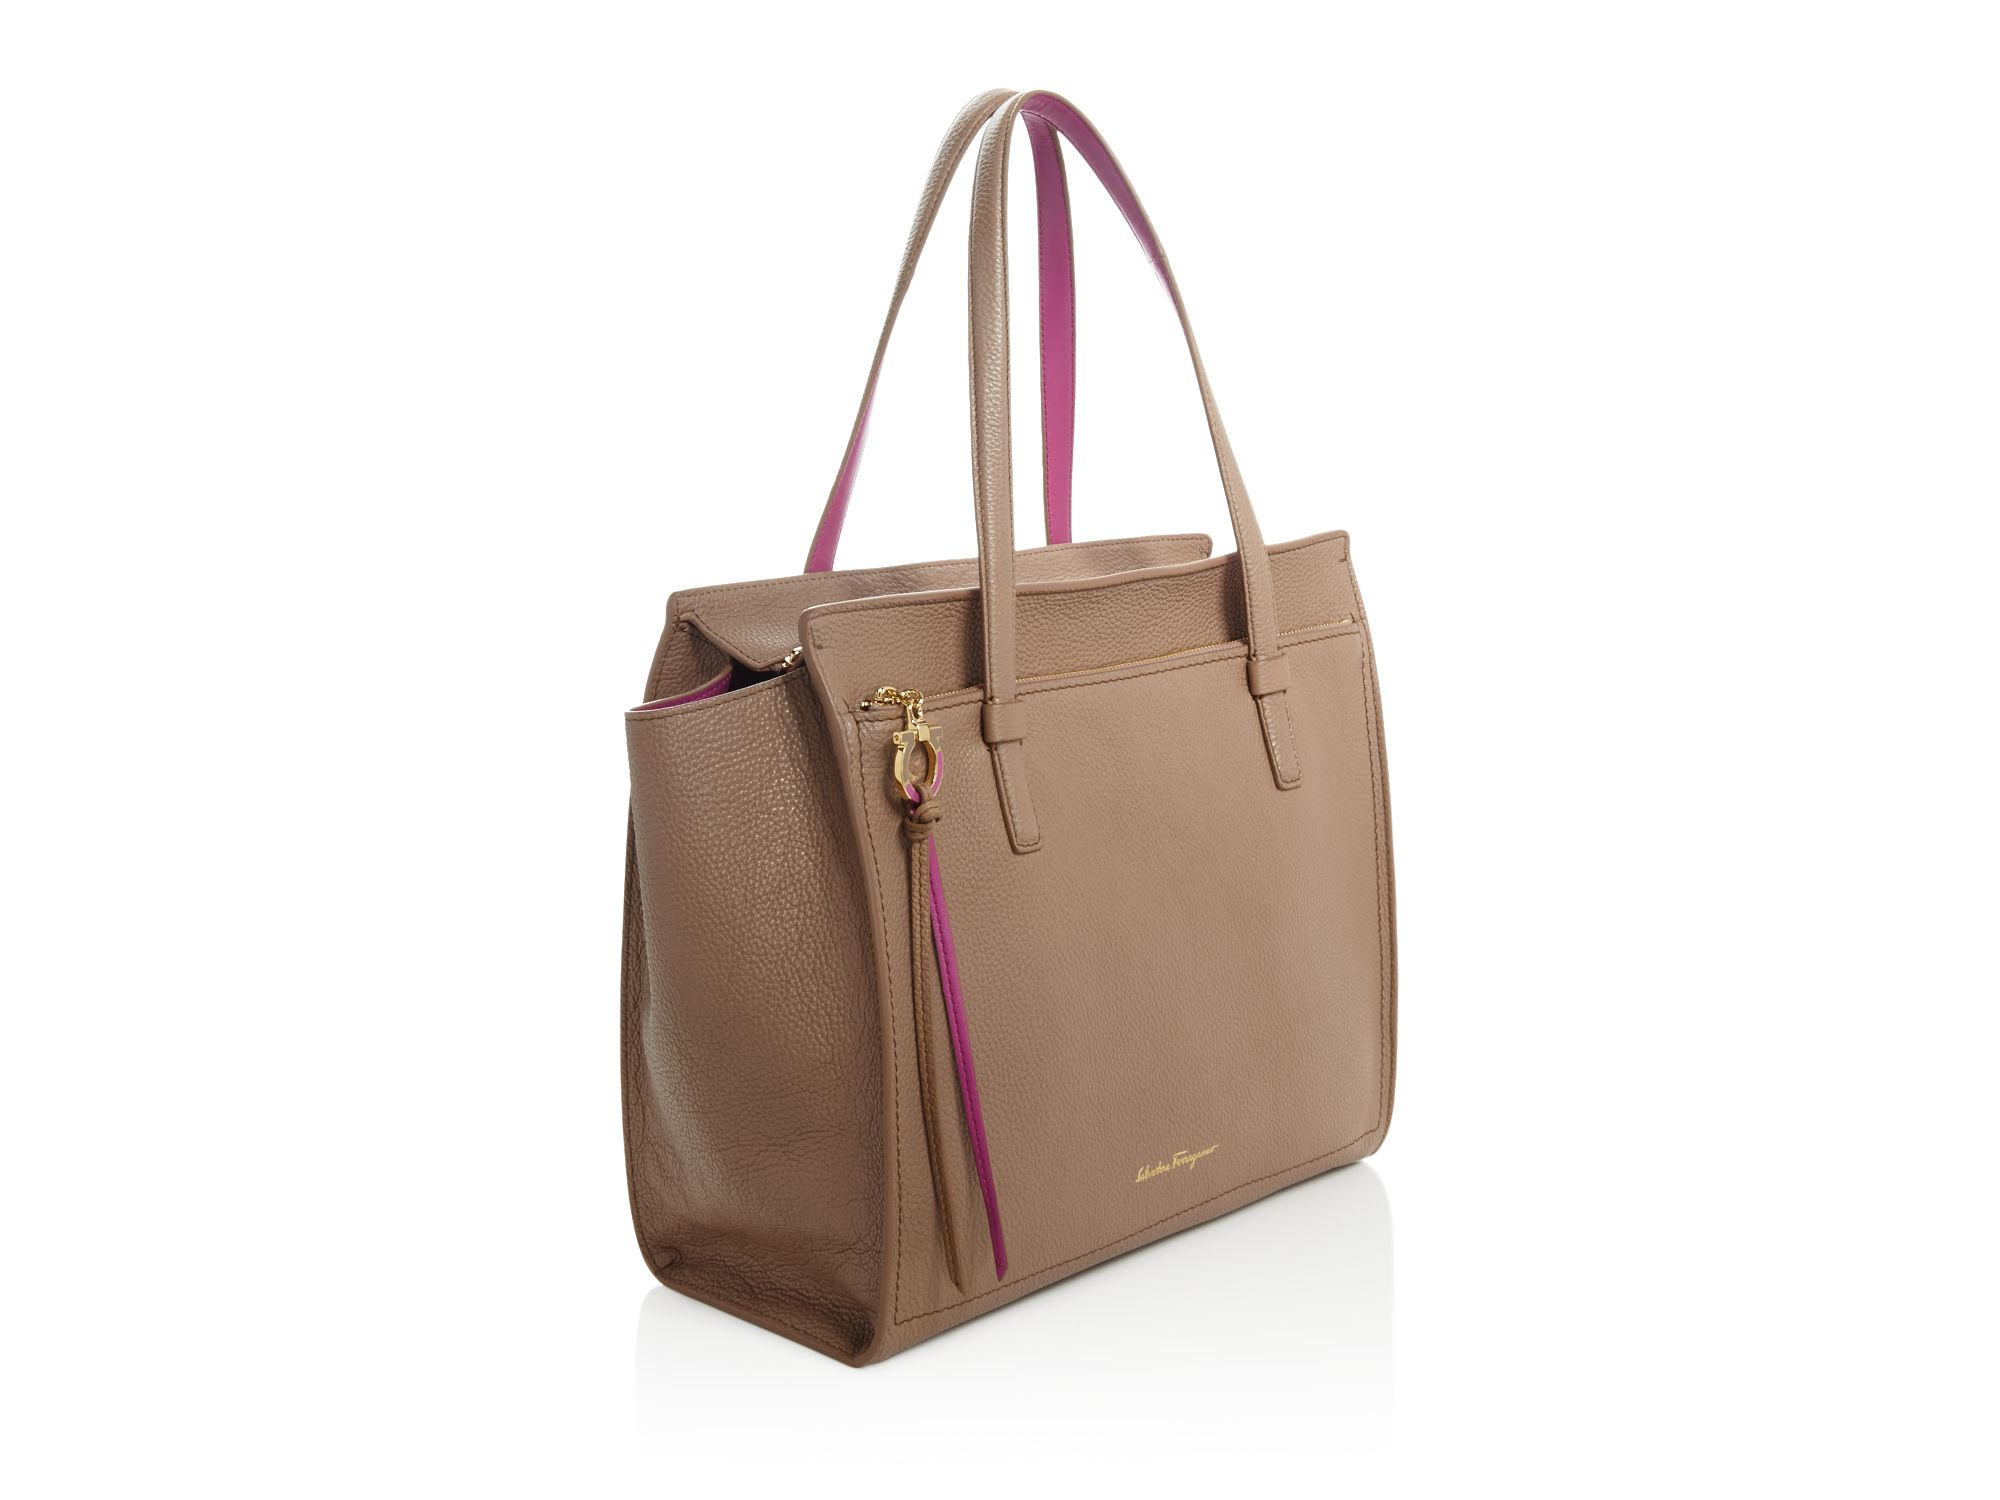 6d41c6084d56 Lyst - Ferragamo Large Amy Bicolor Tote in Brown